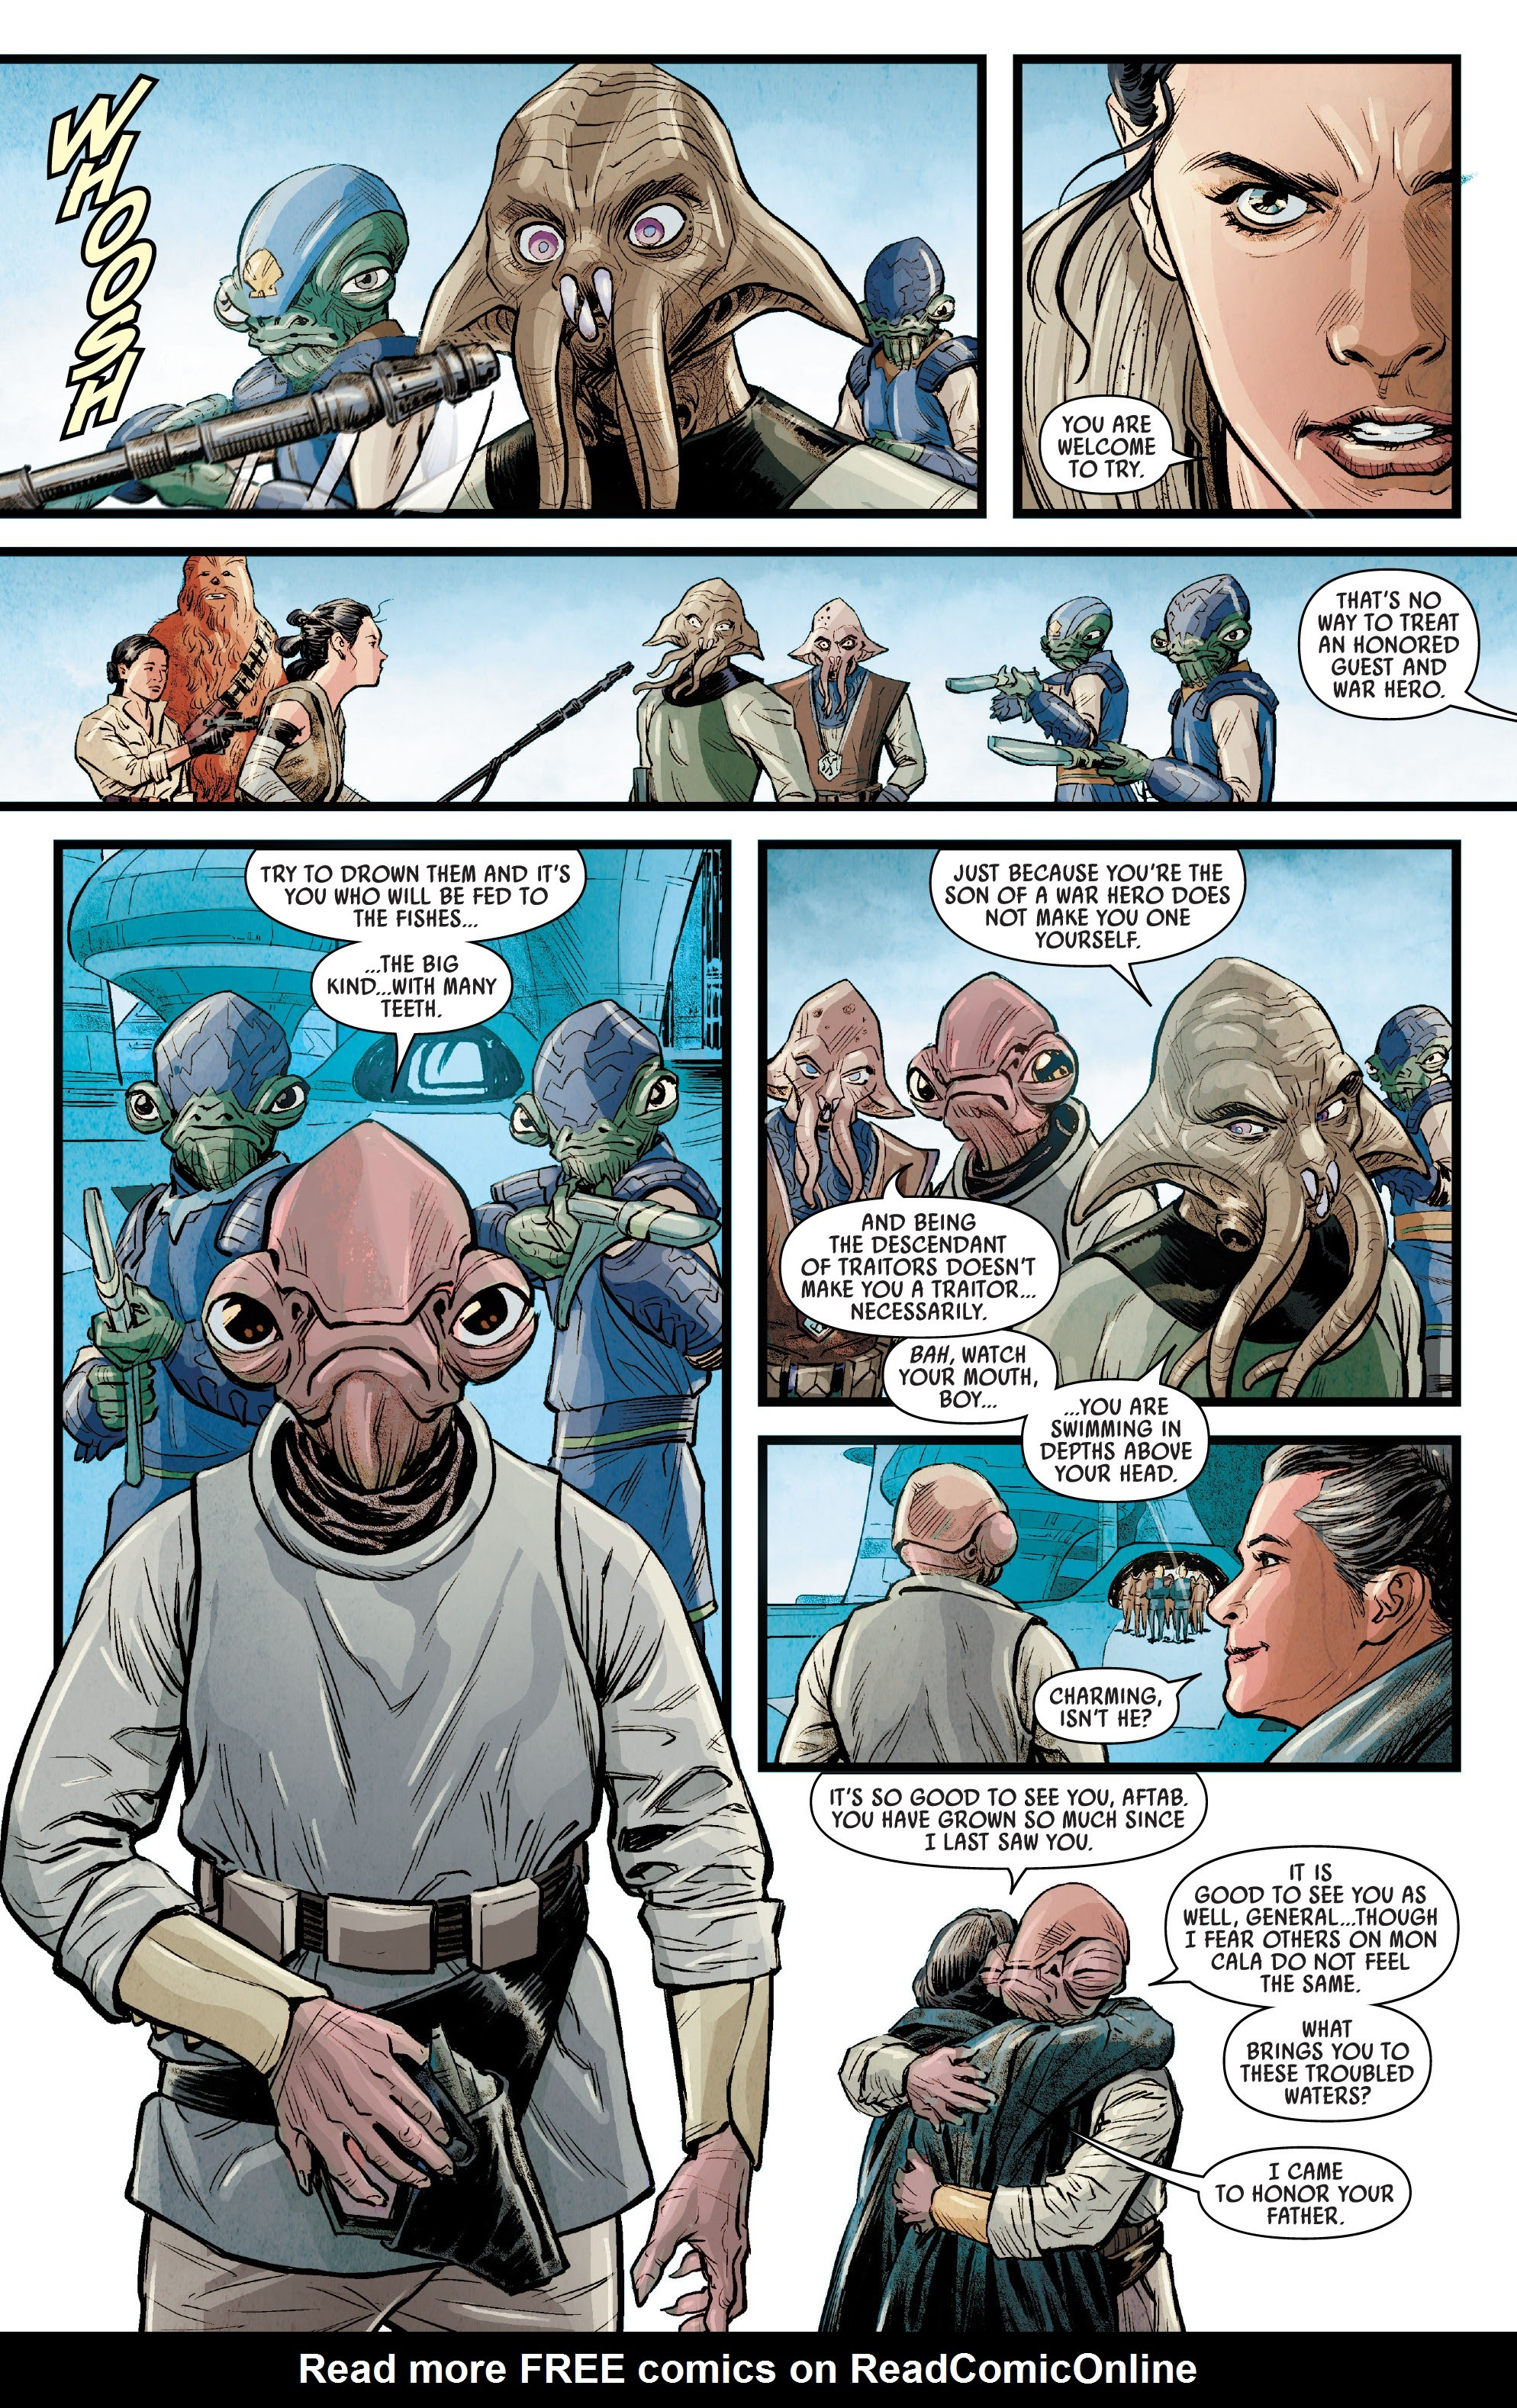 Journey To Star Wars The Rise Of Skywalker Allegiance 2 Read Journey To Star Wars The Rise Of Skywalker Allegiance Issue 2 Page 4